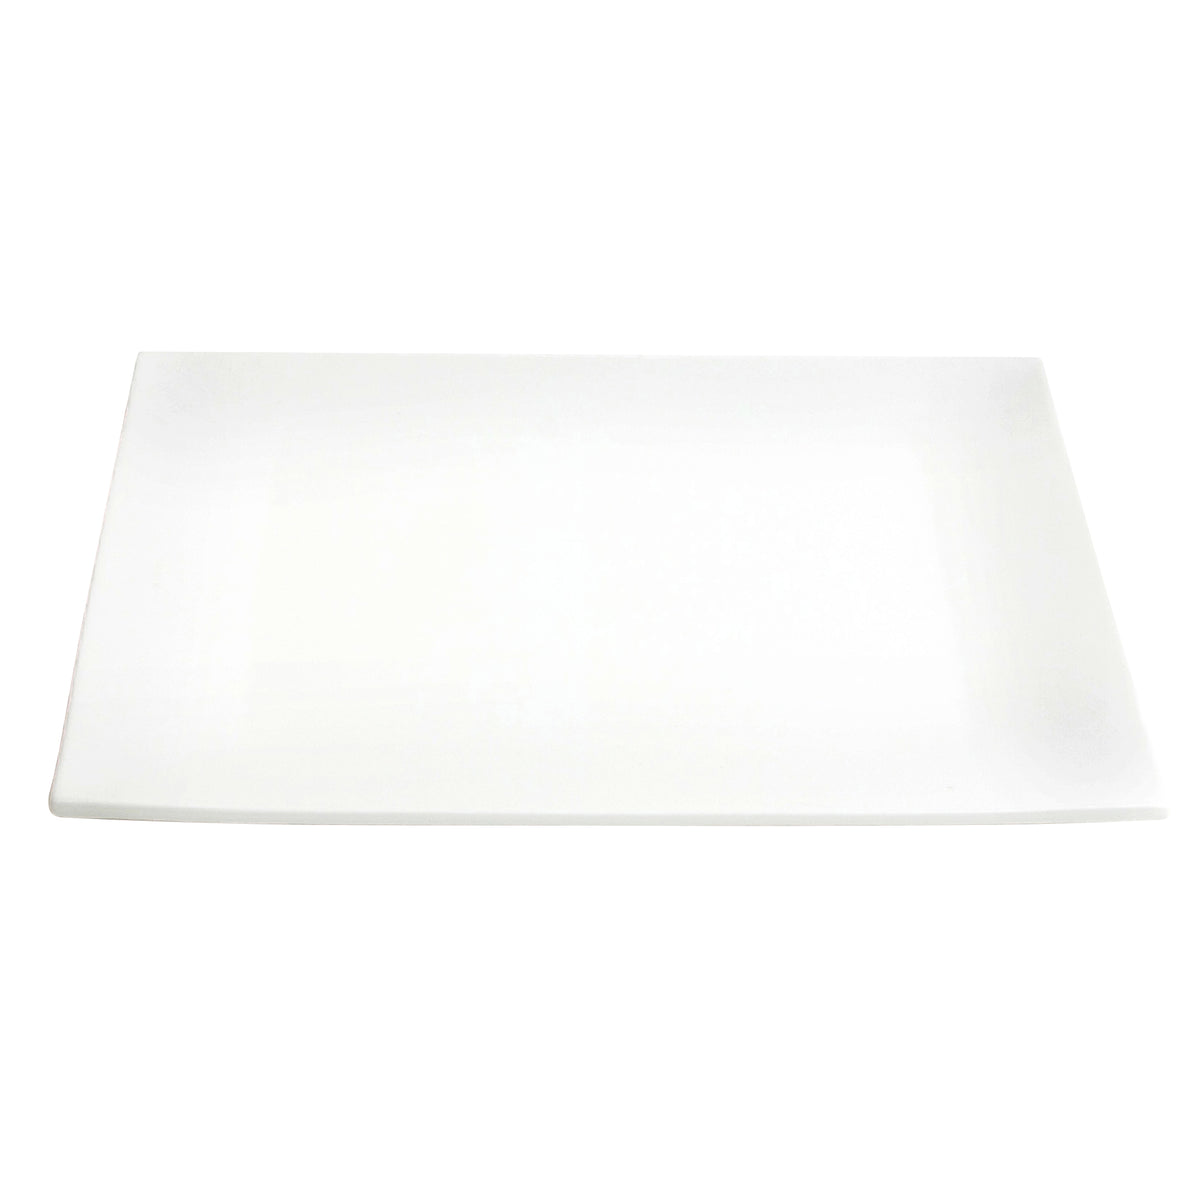 A Table Occasion Square Plate